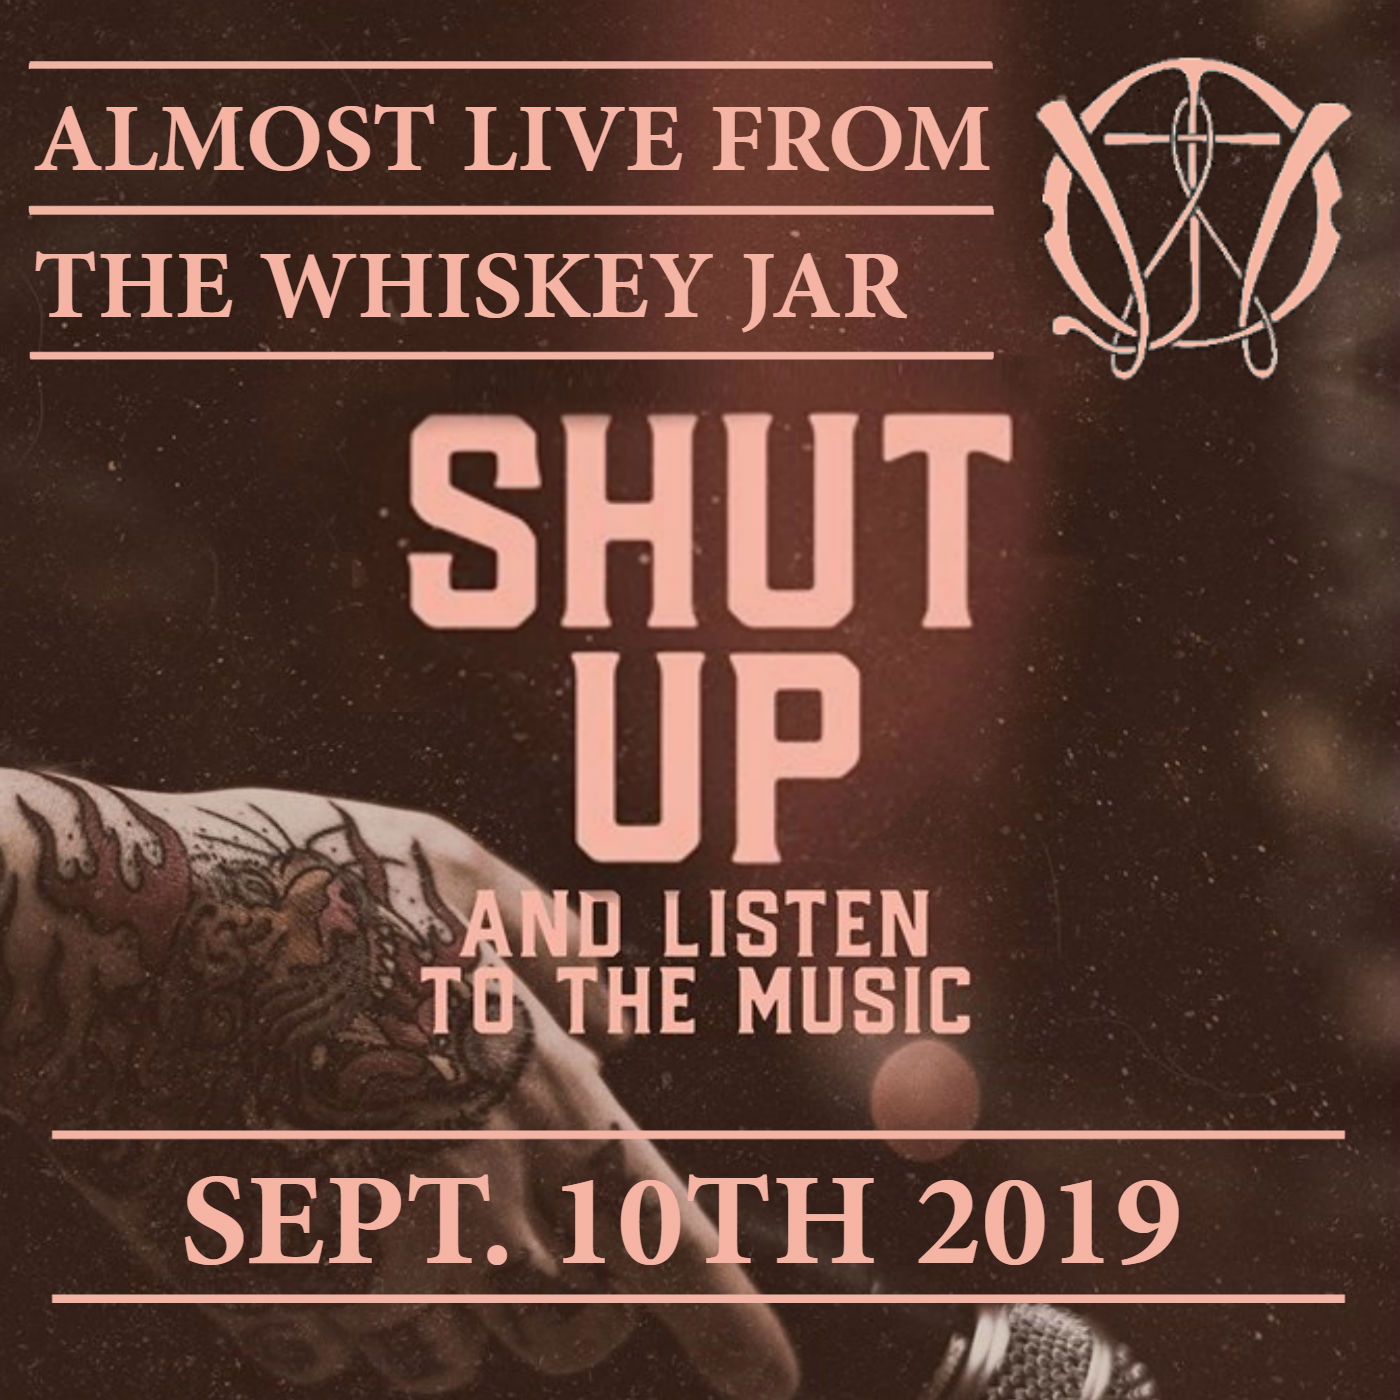 Almost Live From the Whiskey Jar - September 10th 2019 [Episode 44] - Glorious Republic Radio